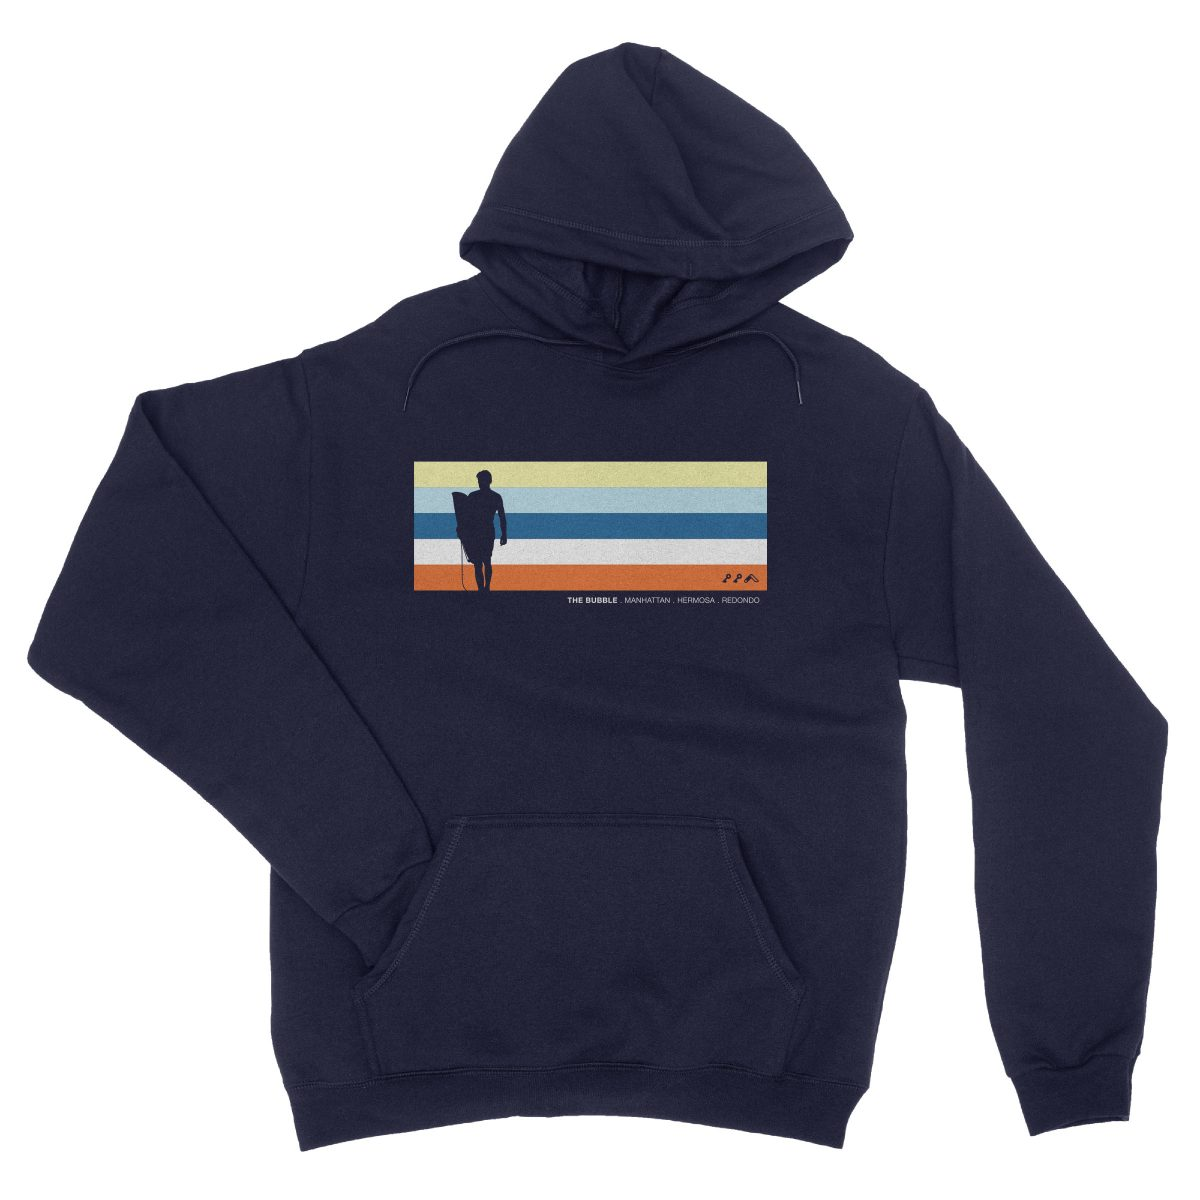 the bubble redondo hermosa manhattan beach hoodies in navy by kikicutt sweatshirt store